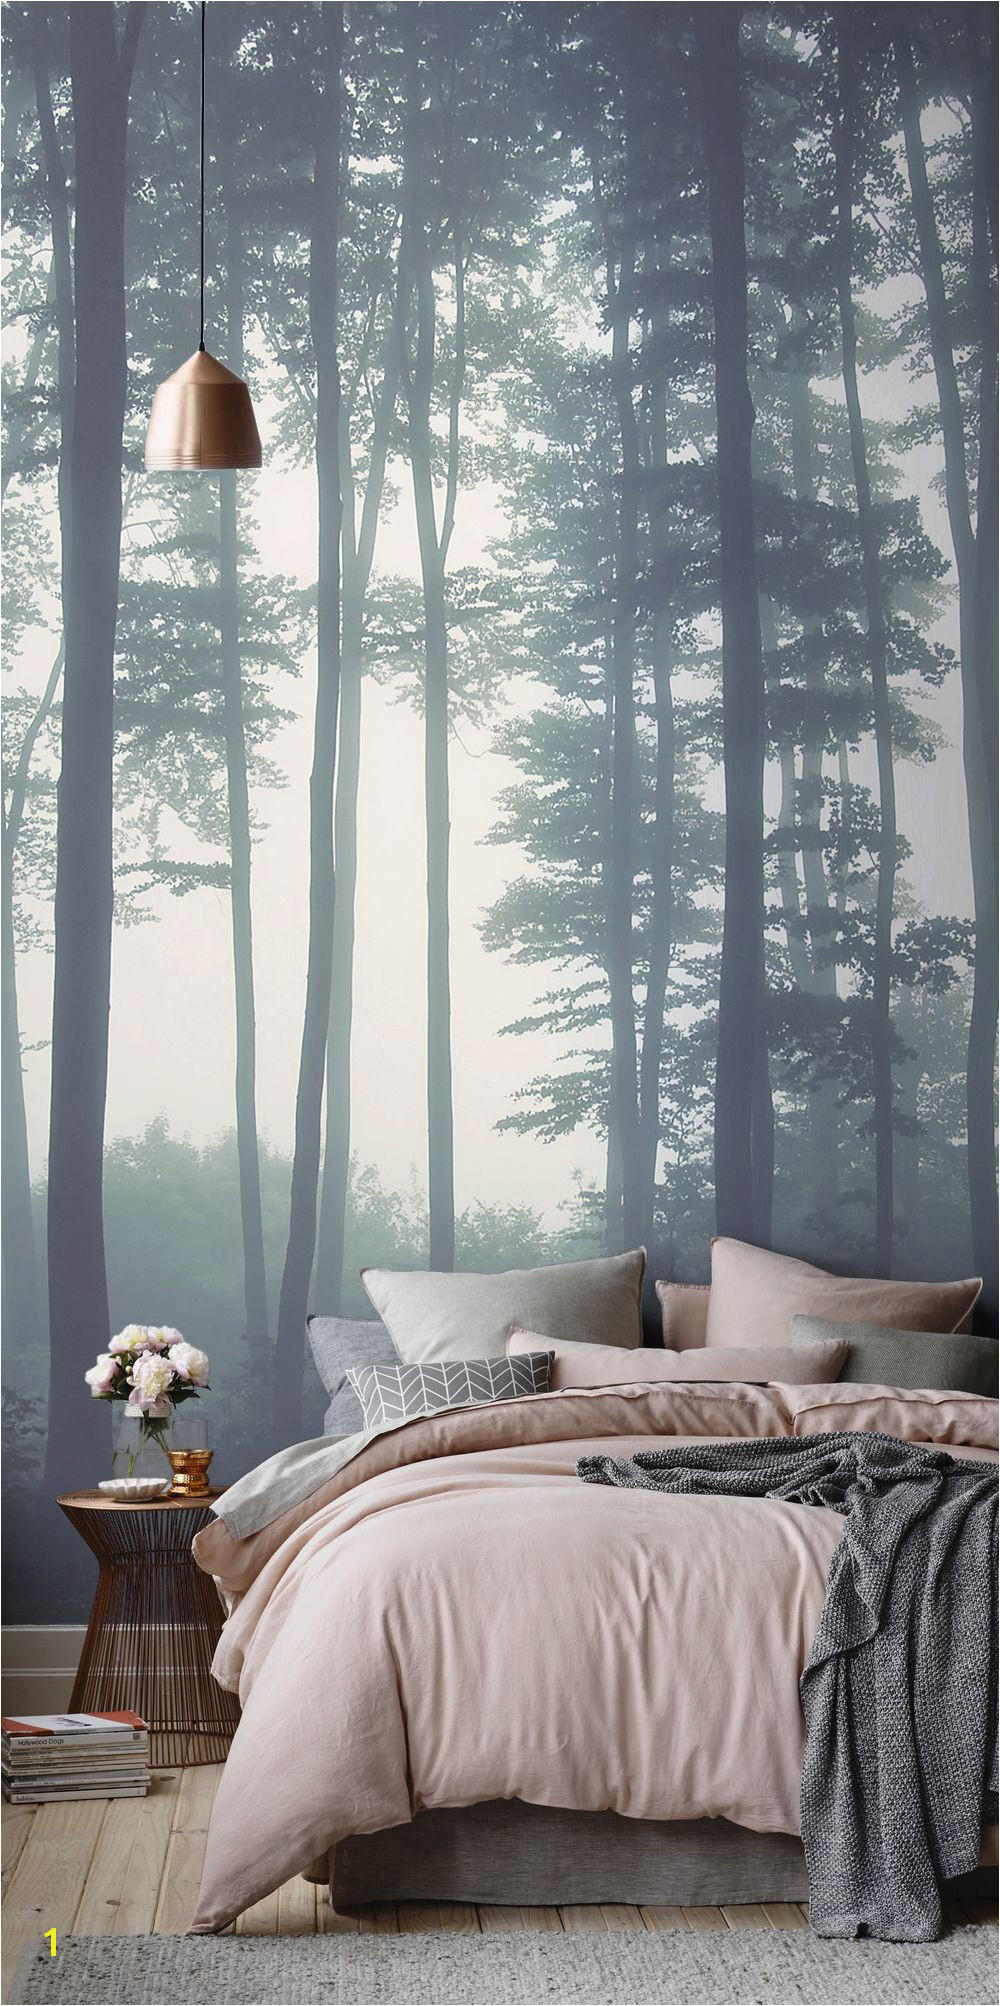 Wall Murals for Bedrooms Uk Sea Of Trees forest Mural Wallpaper